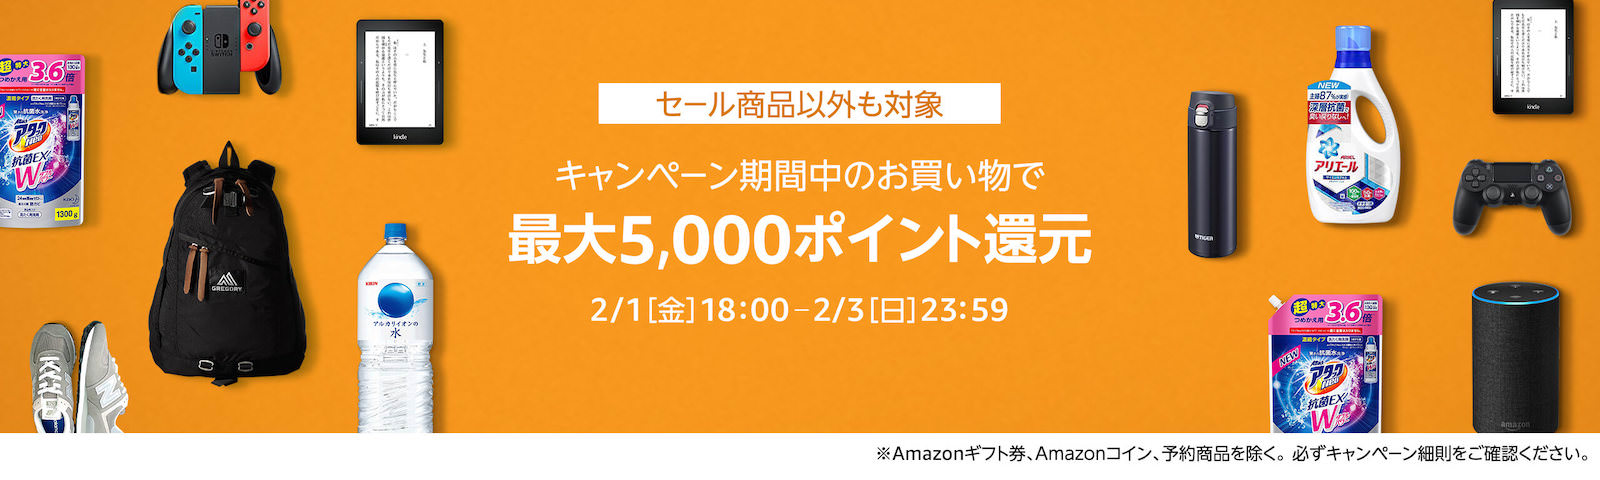 Point Up Campaign Amazon TimeSale 201902